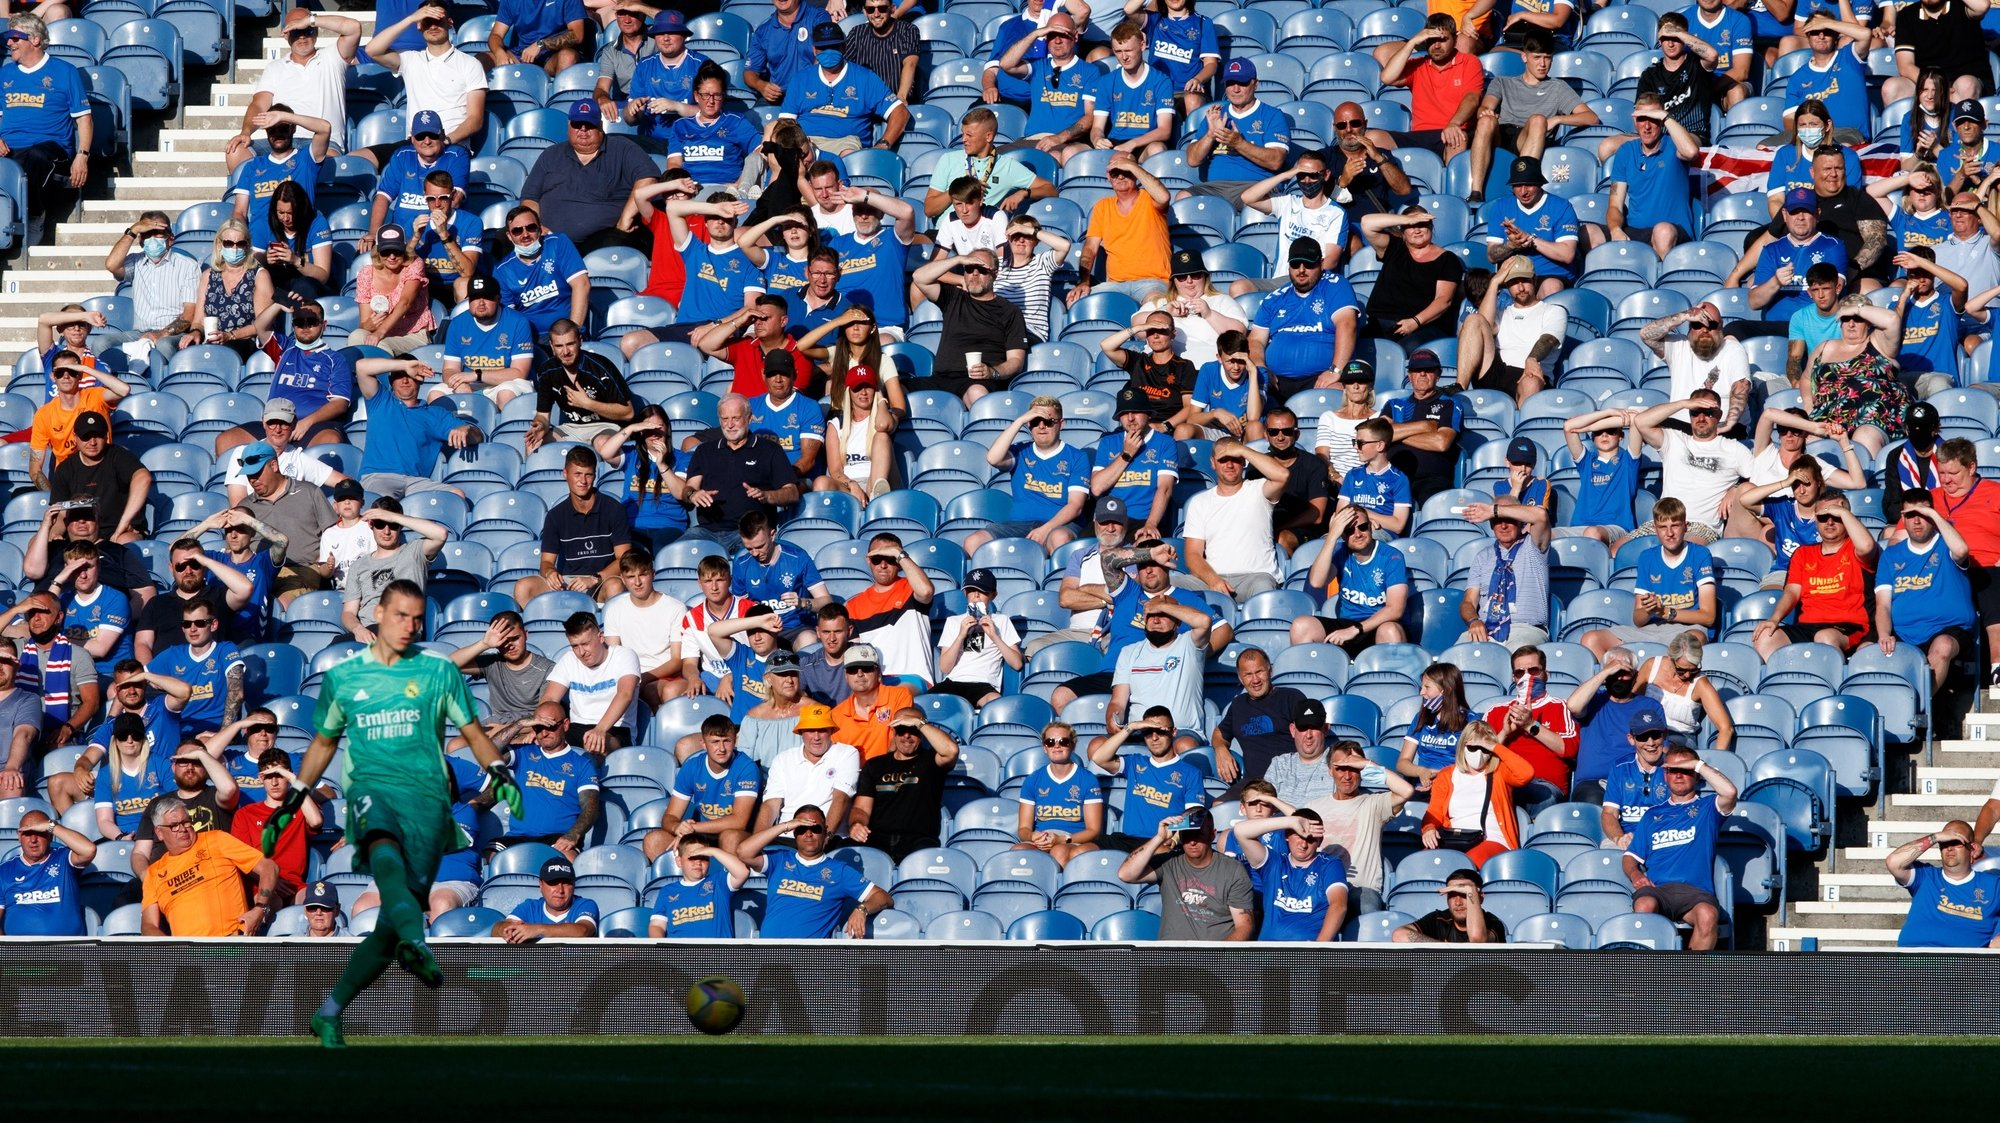 epa09365515 Rangers fans attend the pre-season friendly test soccer match between Glasgow Rangers and Real Madrid at Ibrox Stadium in Glasgow, Britain, 25 July 2021.  EPA/Robert Perry